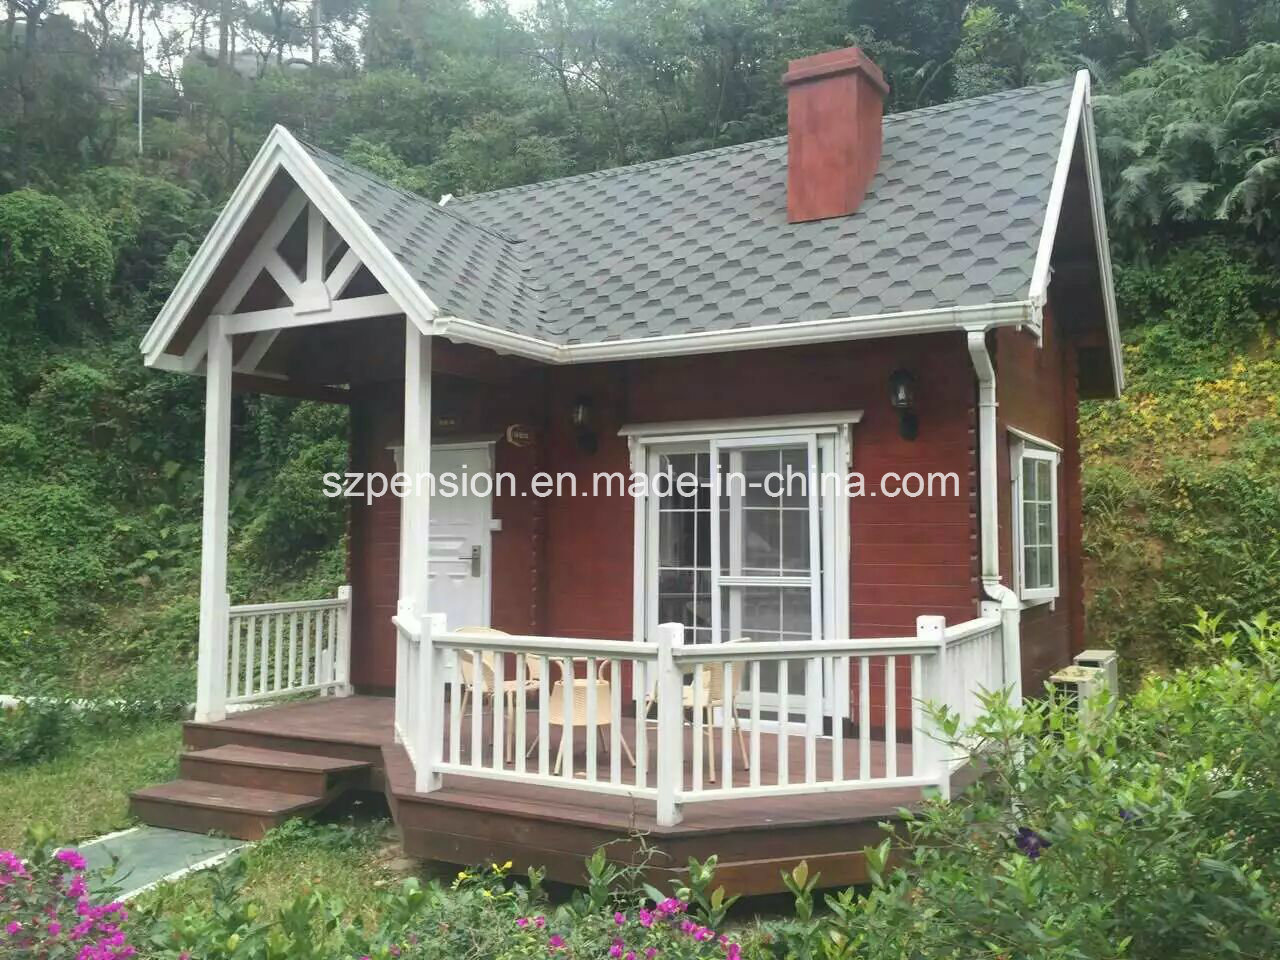 Low Profit High Quality Good Holiday with Mobile Prefabricated/Prefab Container House/Villa